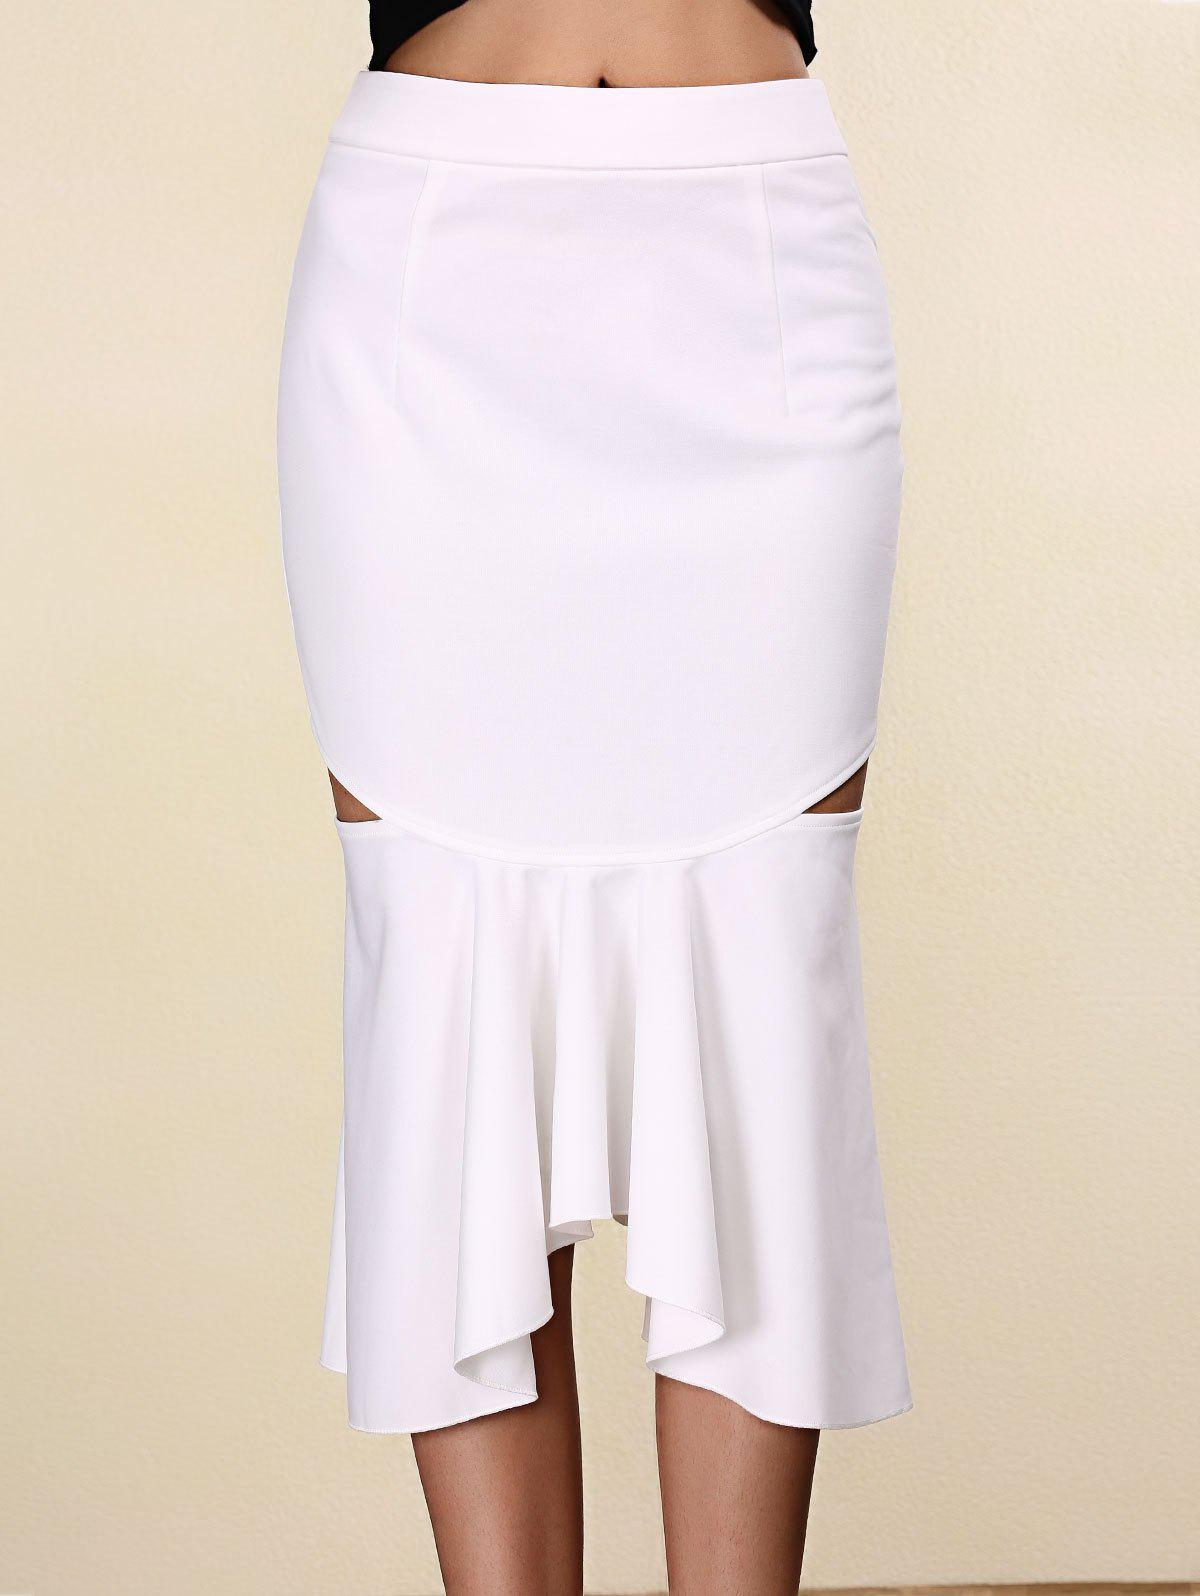 Unique Women's Stylish Pure Color Mermaid Cut Out Skirt